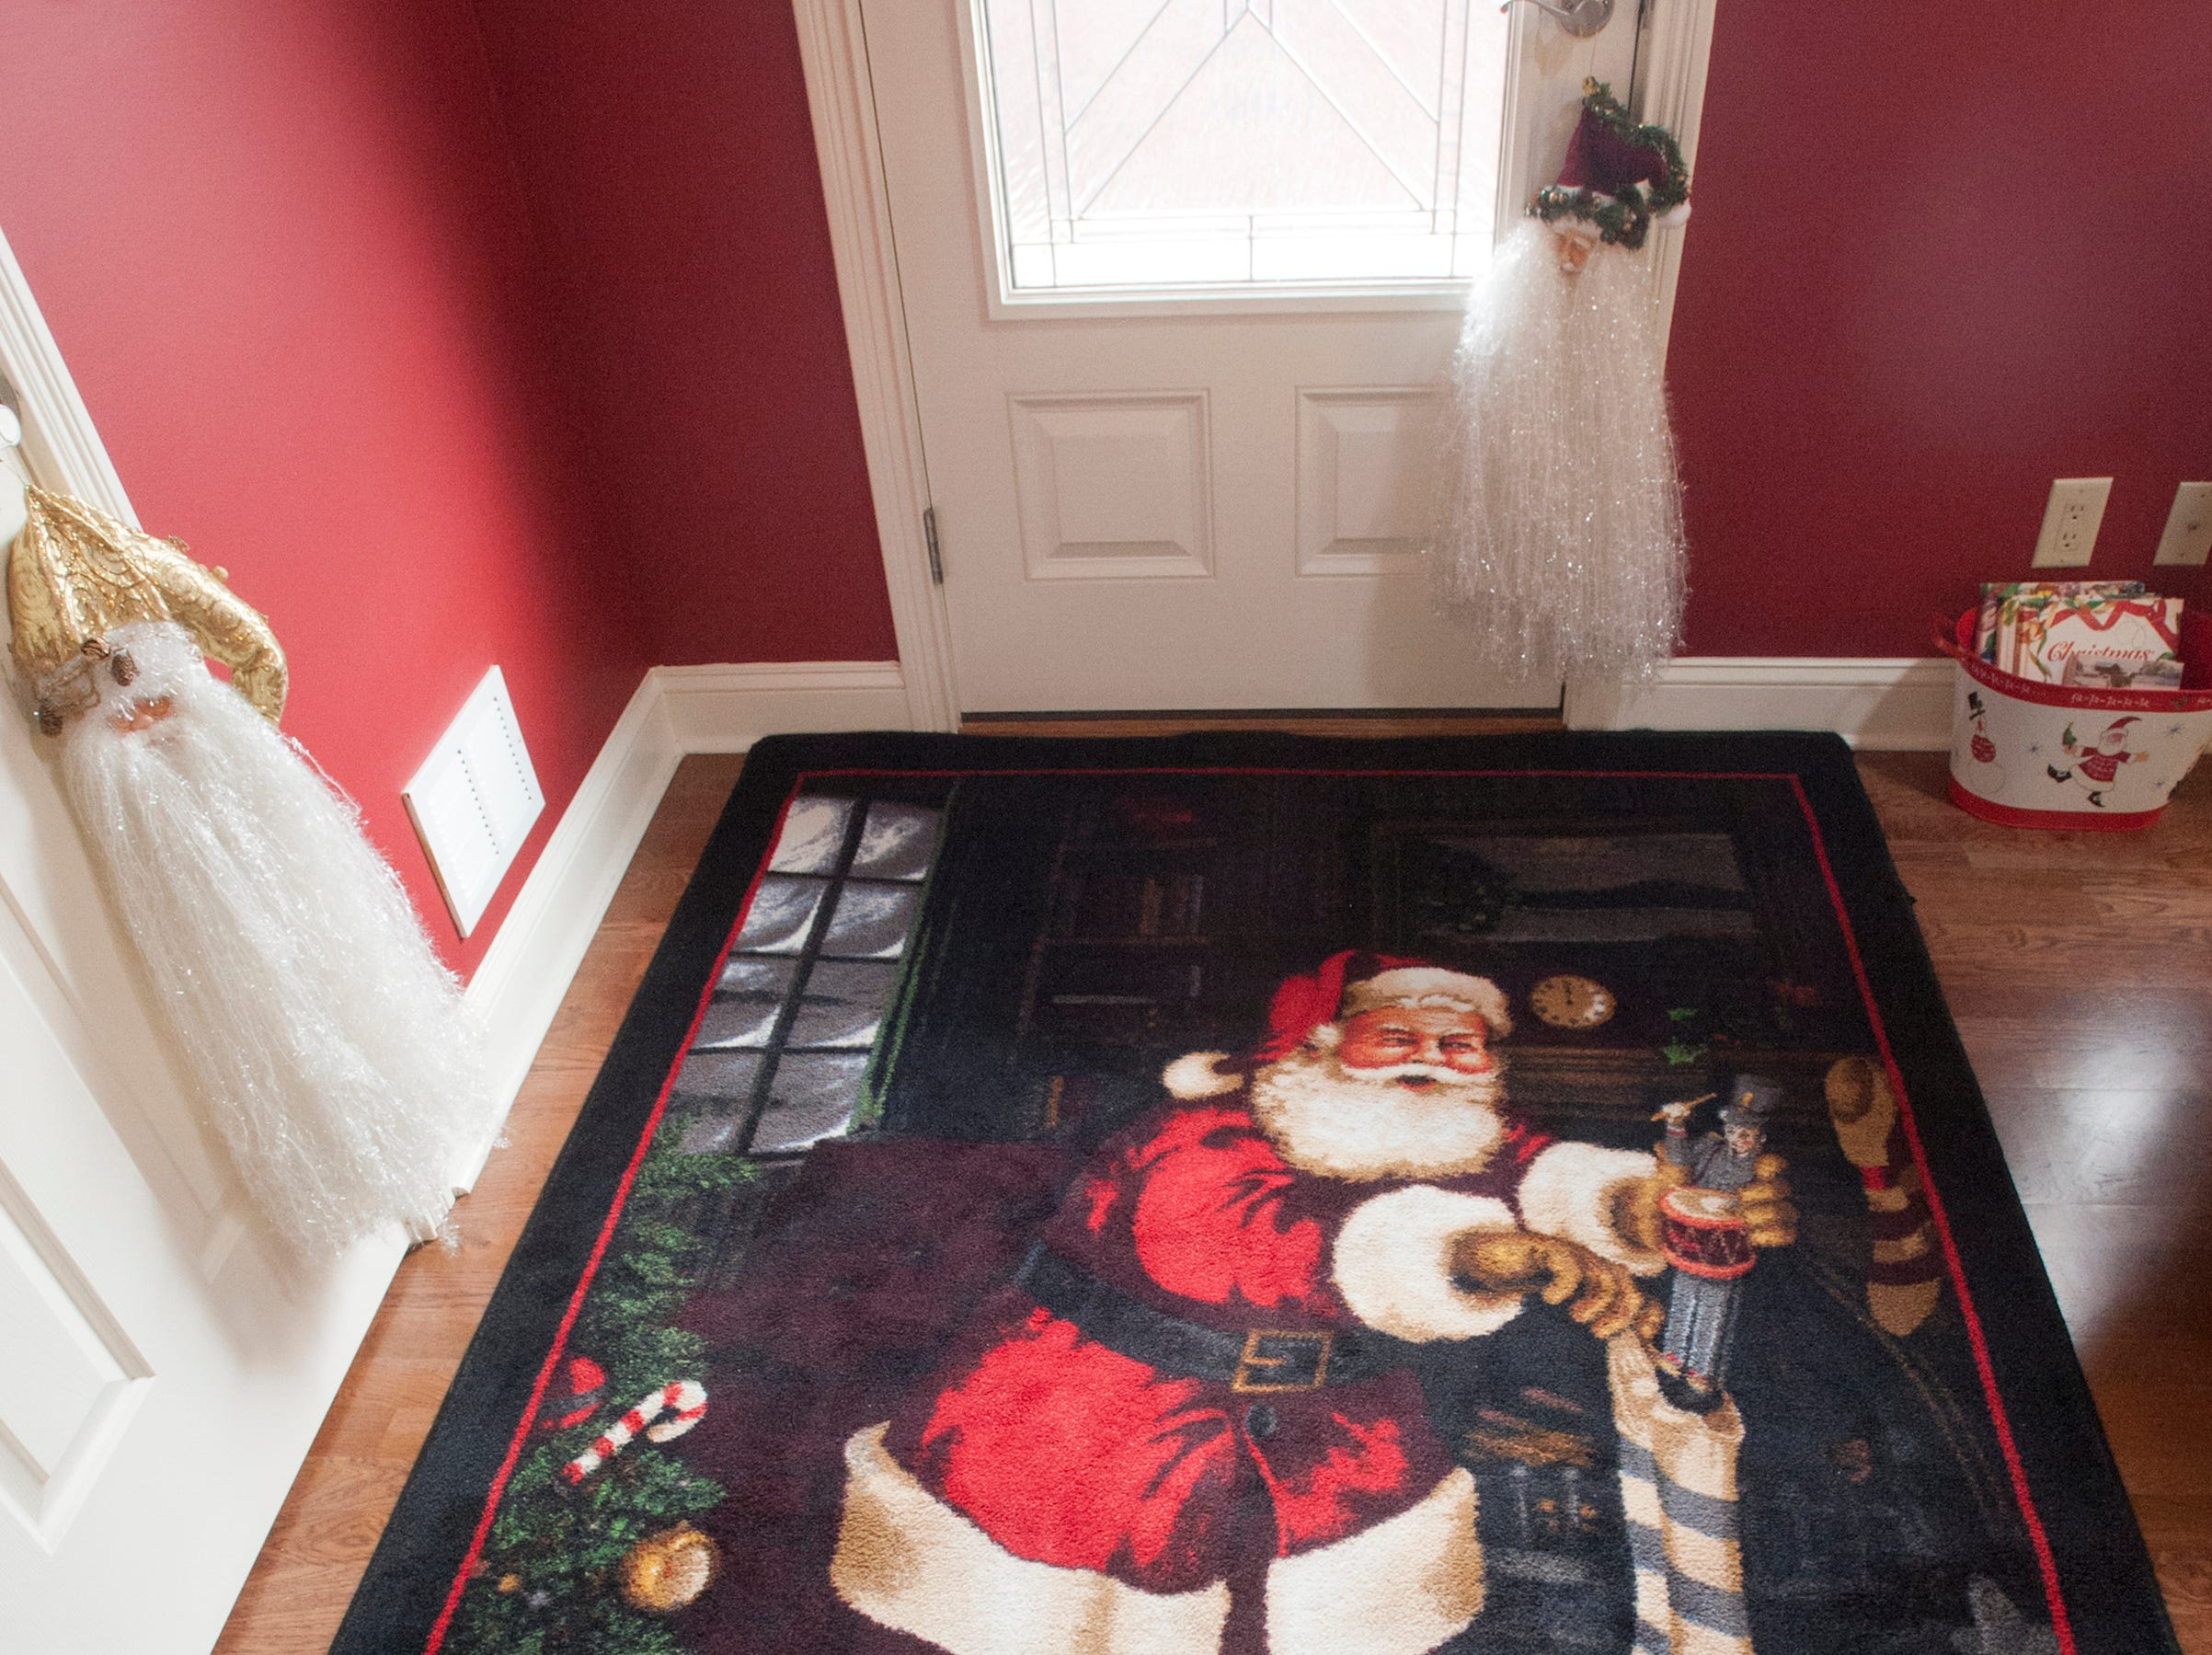 The entranceway of the McMurry home where a large Santa carpet welcomes visitors.